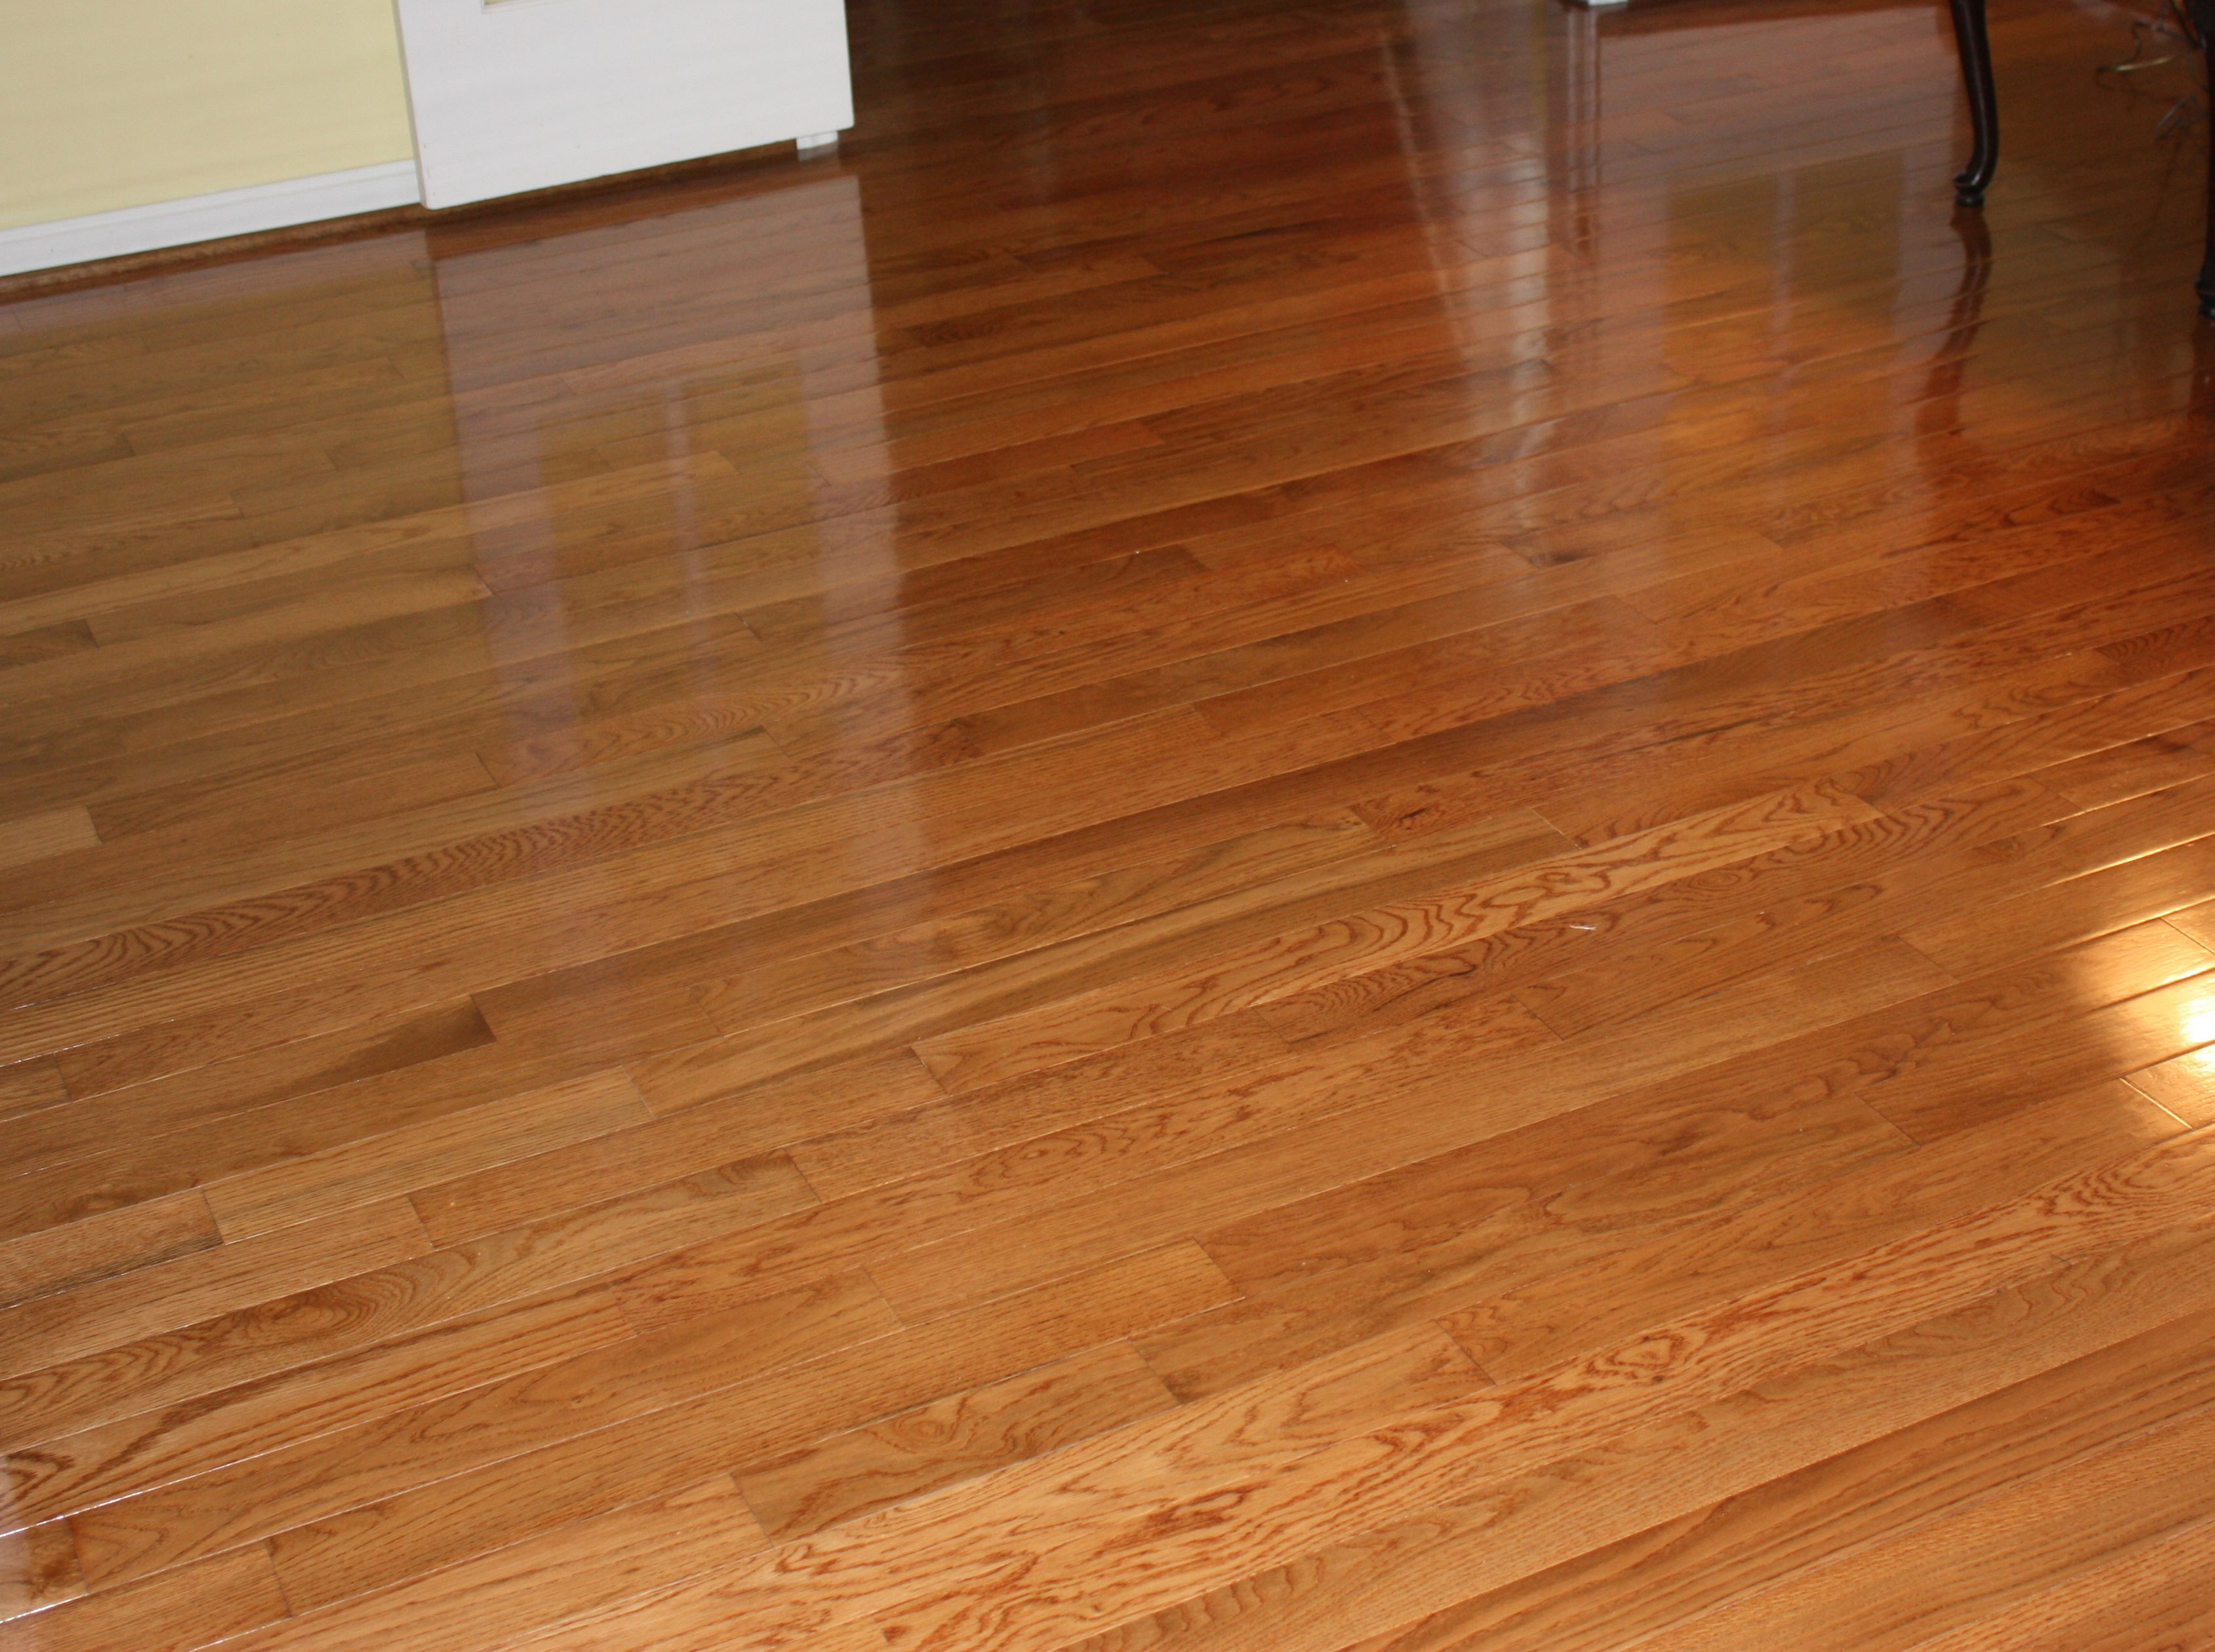 adhogg_builder_hardwood_floor_refinishing-10